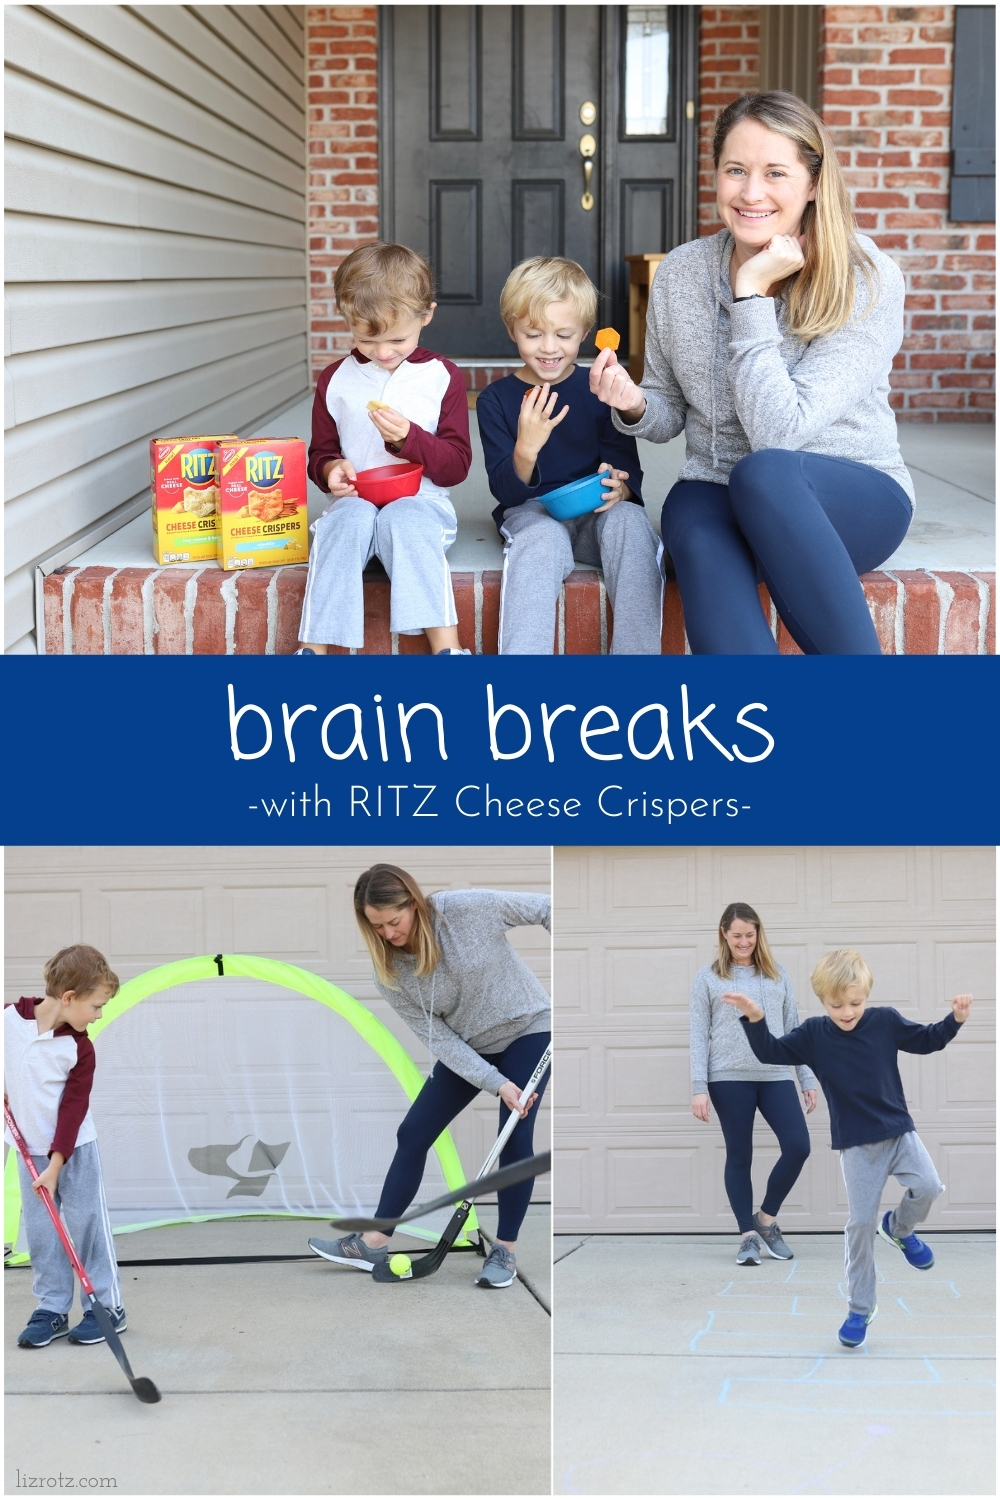 #ad Take a brain break from learning with the new RITZ Cheese Crispers! Check out our fun ideas to break up learning and use our imaginations! #cRITZpy